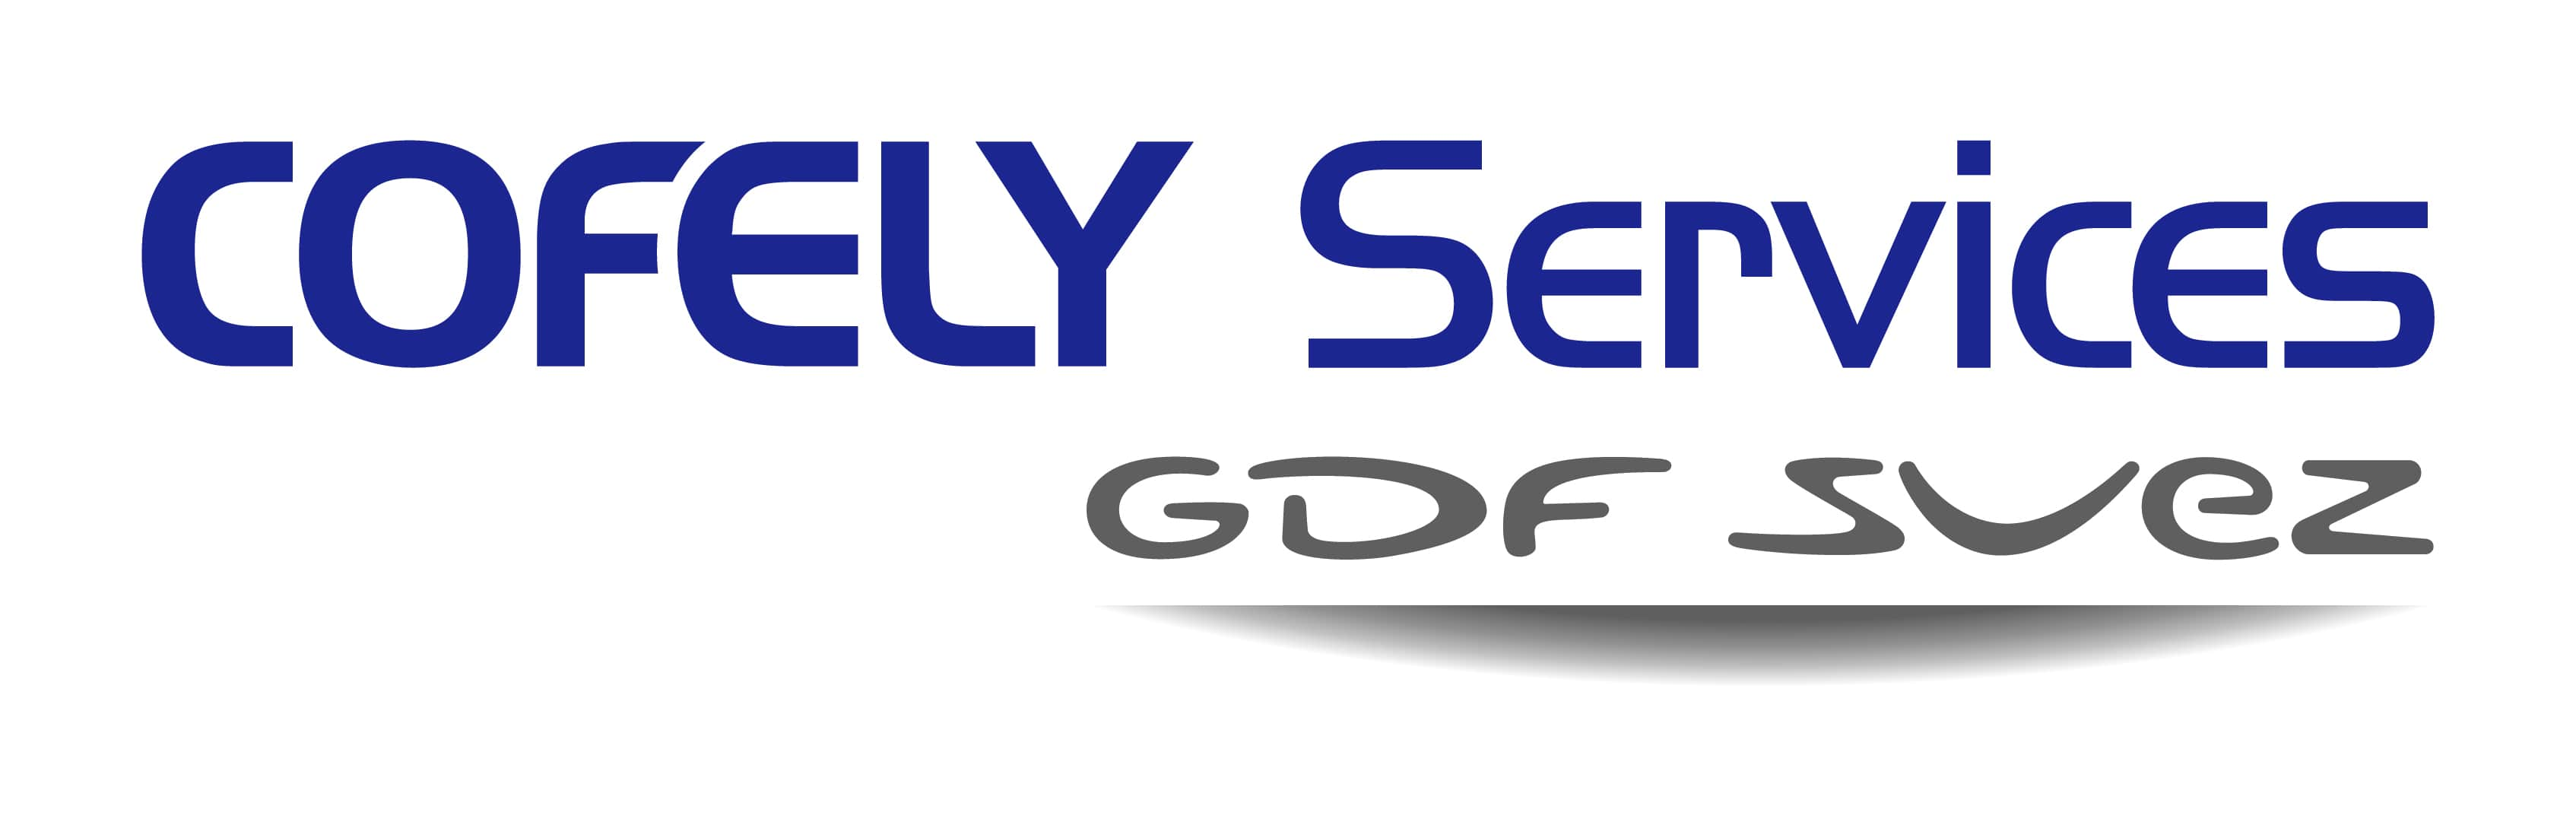 Cofely Services logo